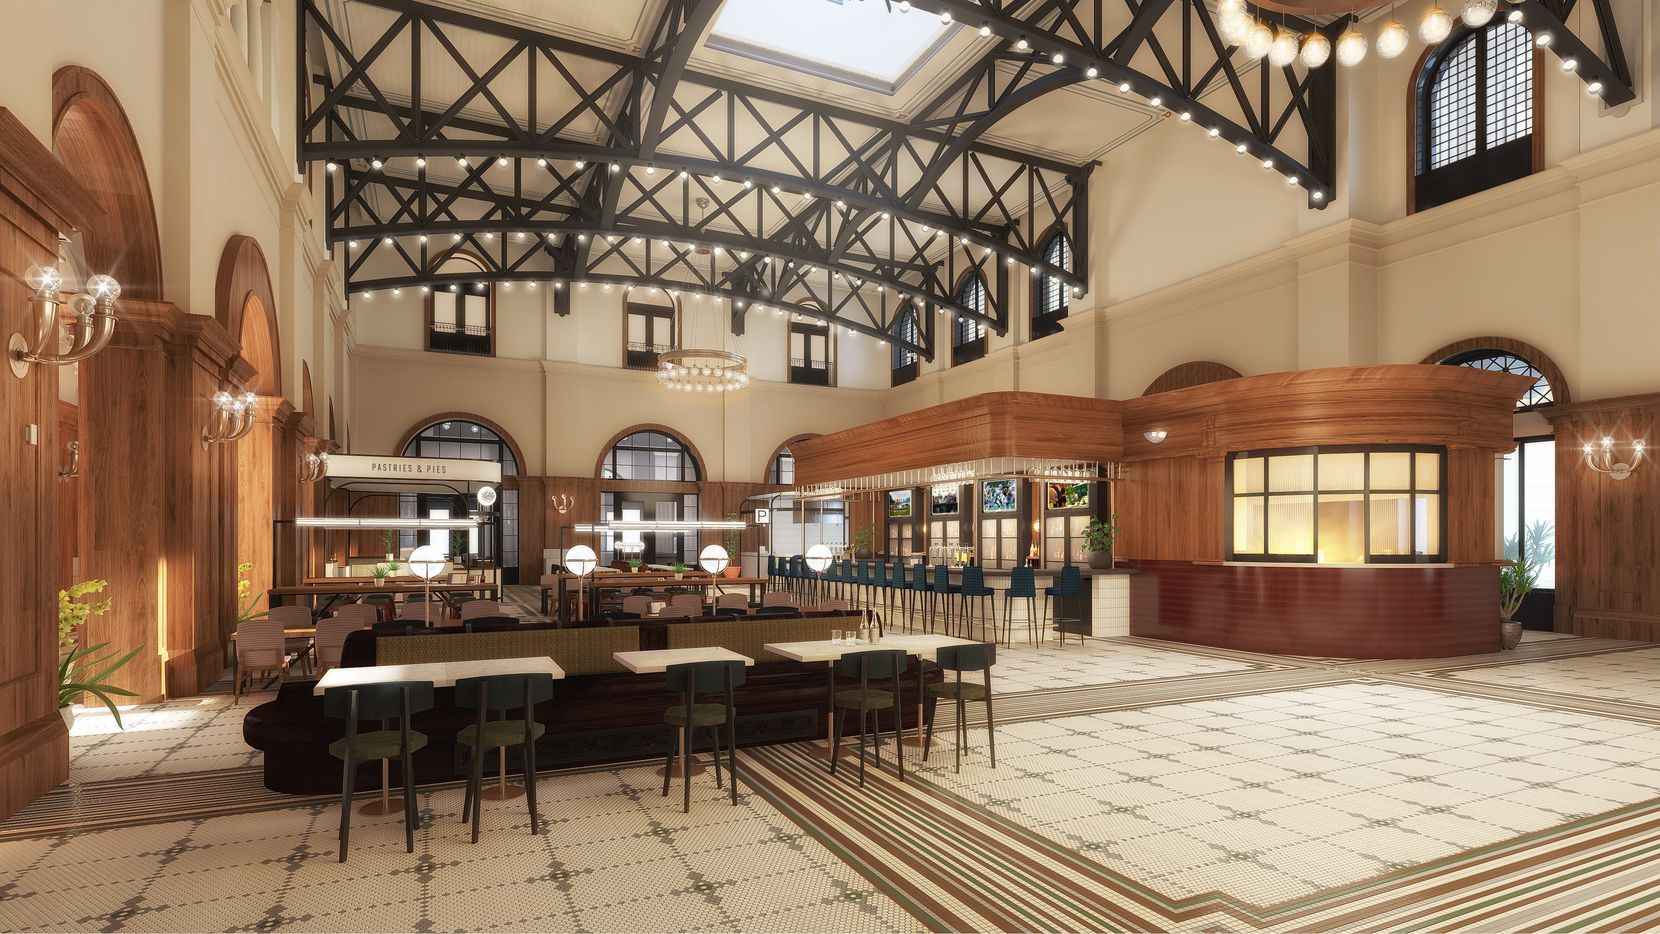 Construction delays have pushed Harvest Hall's opening to February.